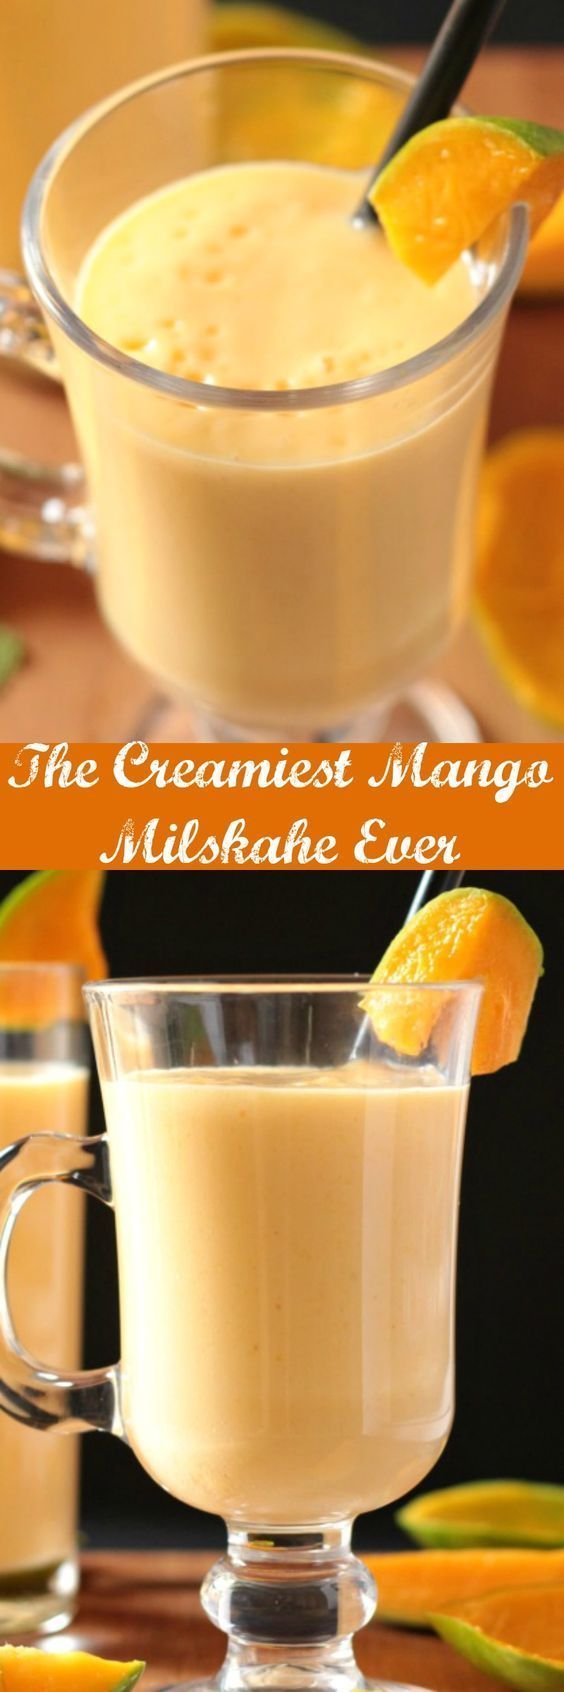 This is thickest, creamiest mango milkshake ever made with only 3 ingredients. No cream added!